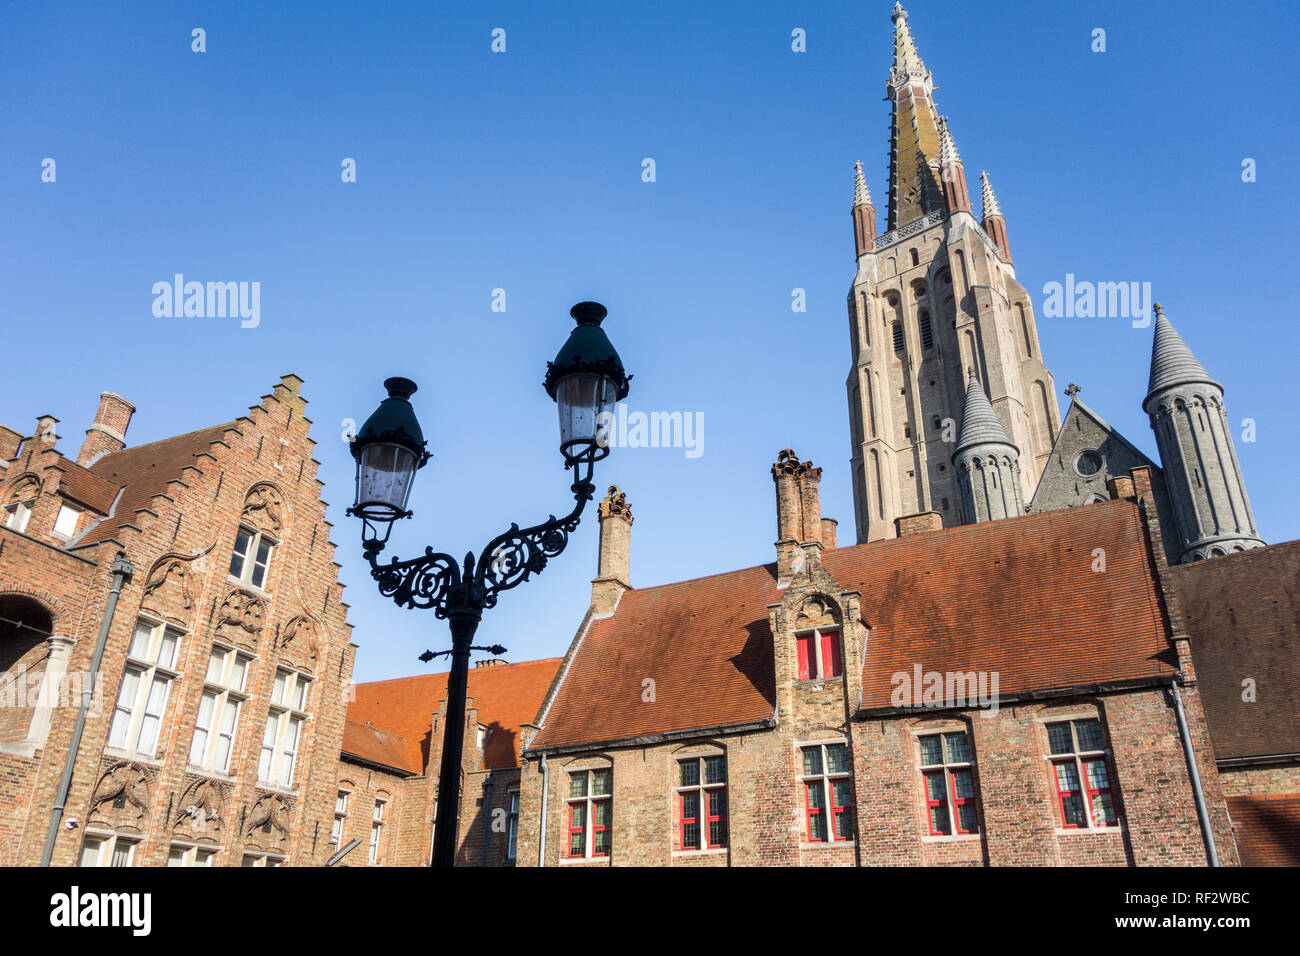 Sint-Janshospitaal / St John's Hospital and church tower of the Church of Our Lady / Onze-Lieve-Vrouwekerk in the city Bruges, West Flanders, Belgium - Stock Image